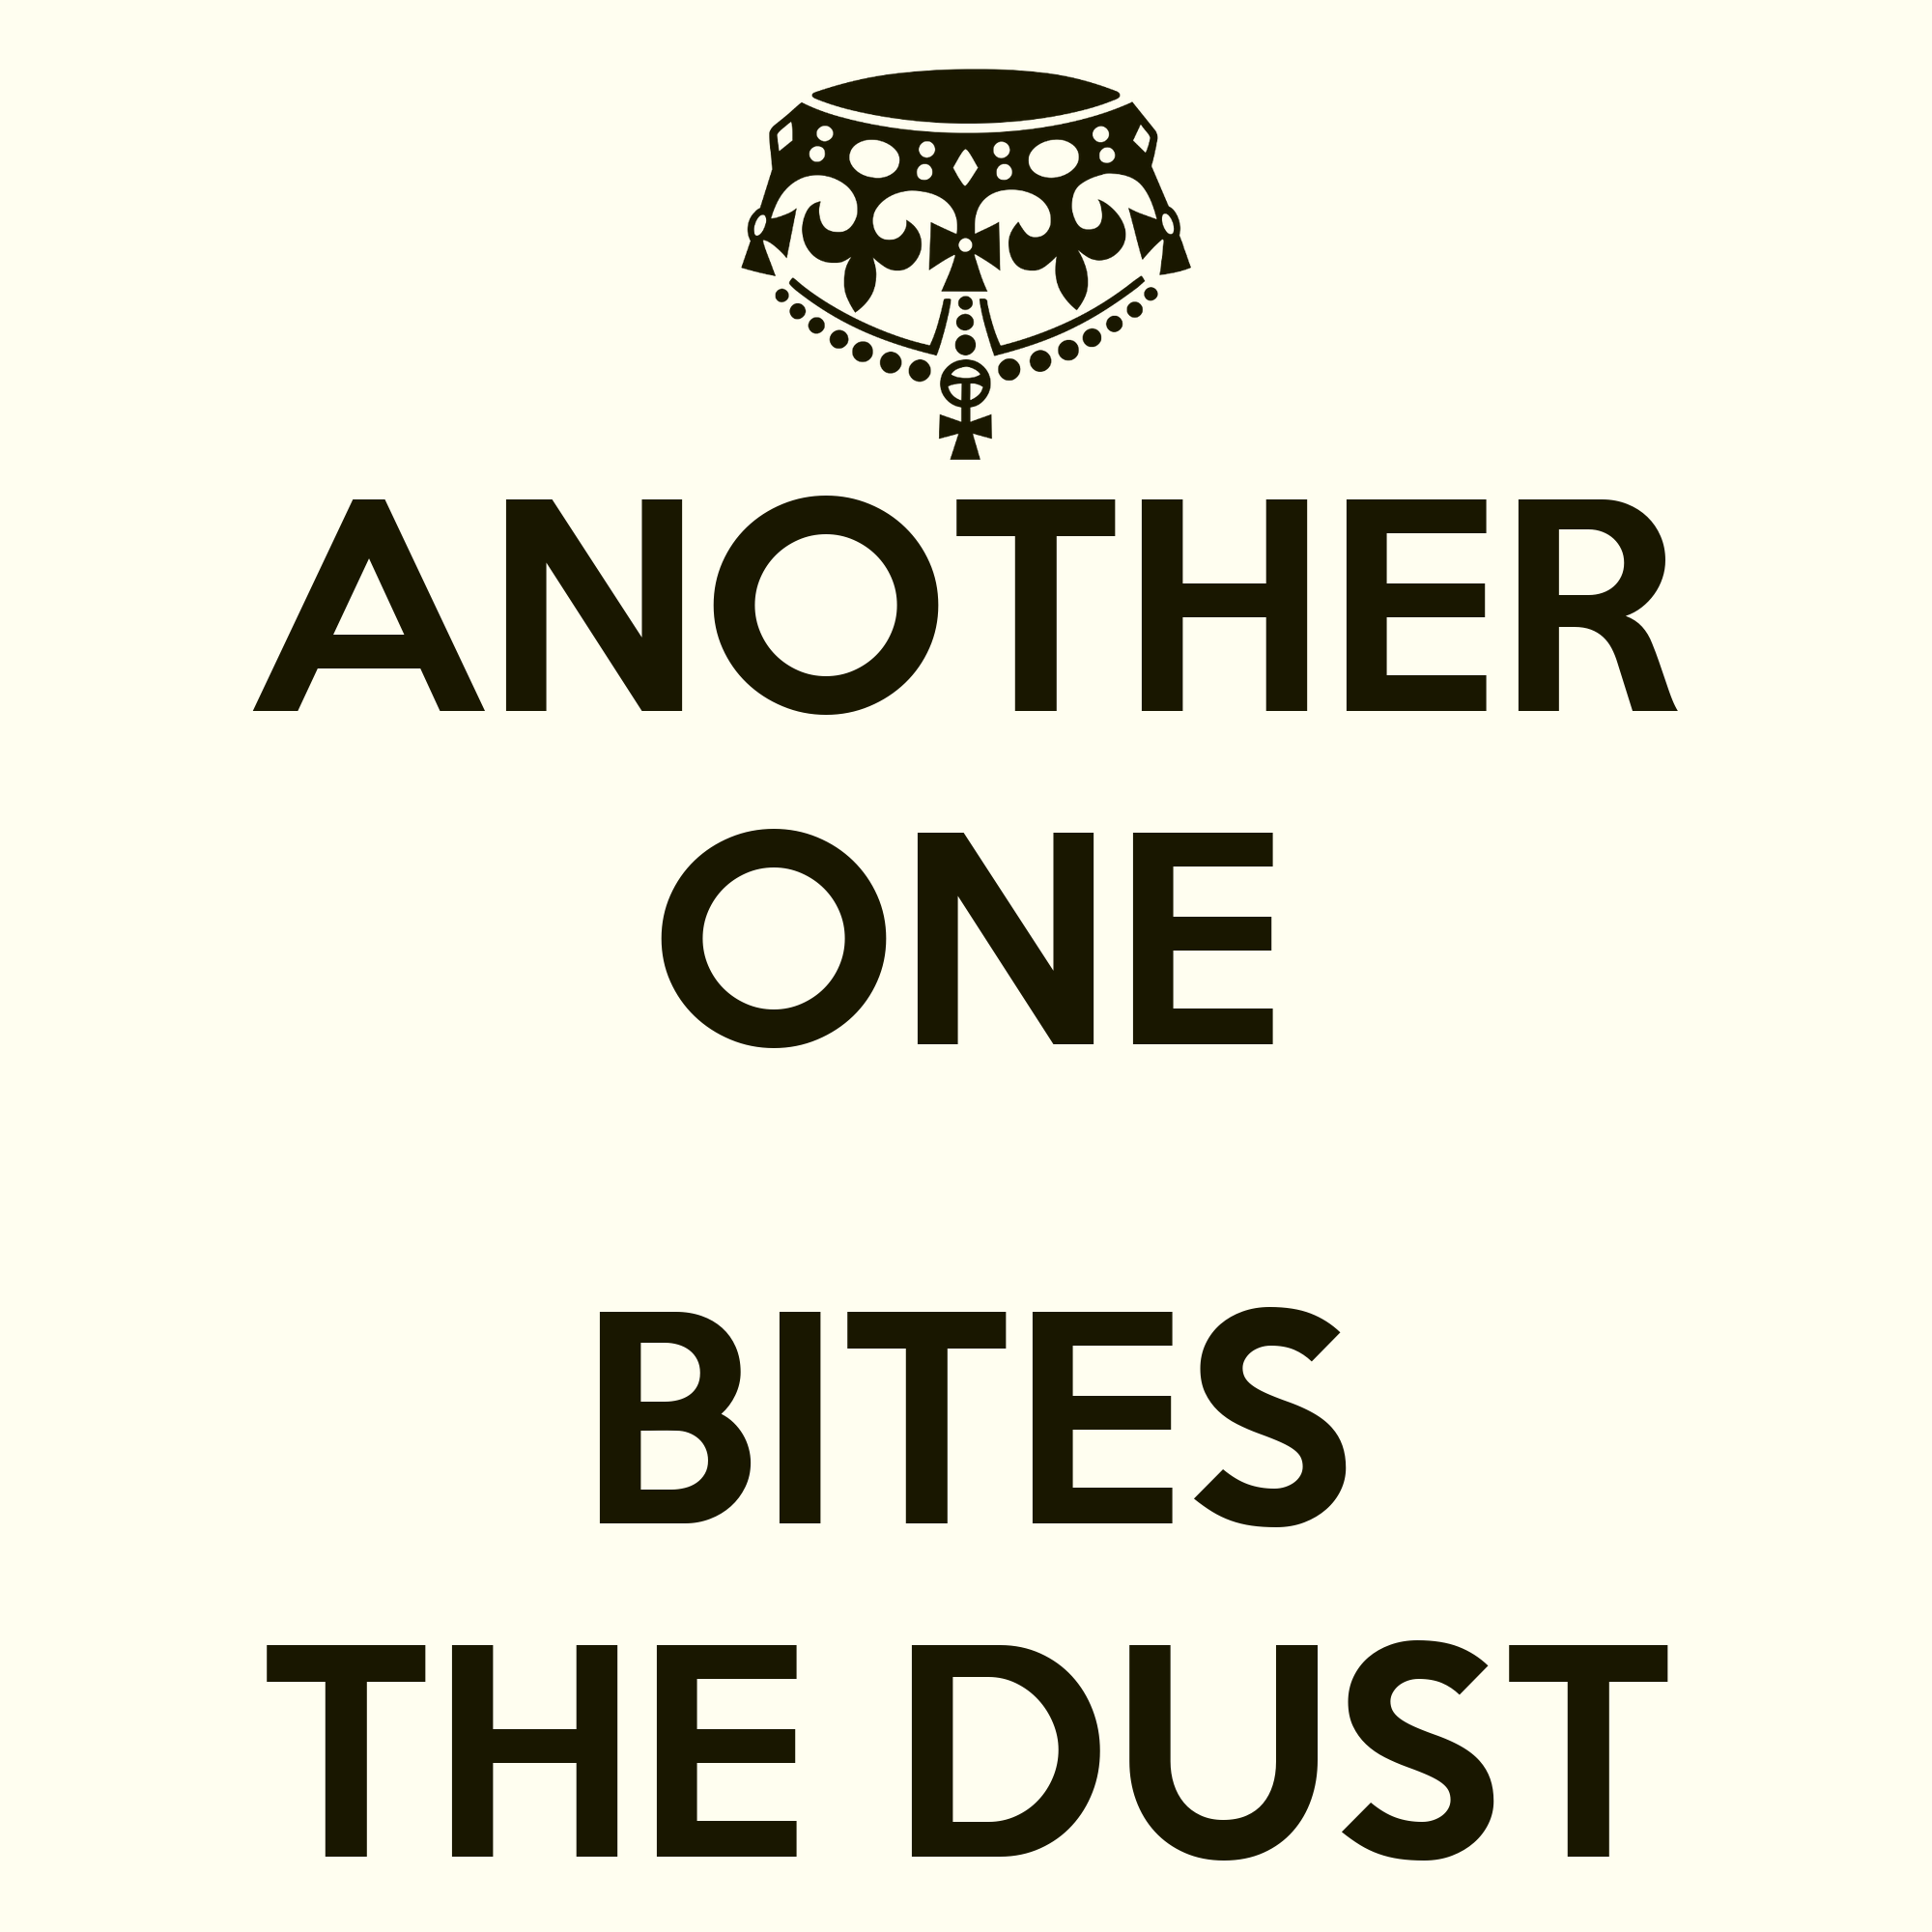 Another One Bites The Dust Another One Bites The Dust Poster Palferencz1 Keep